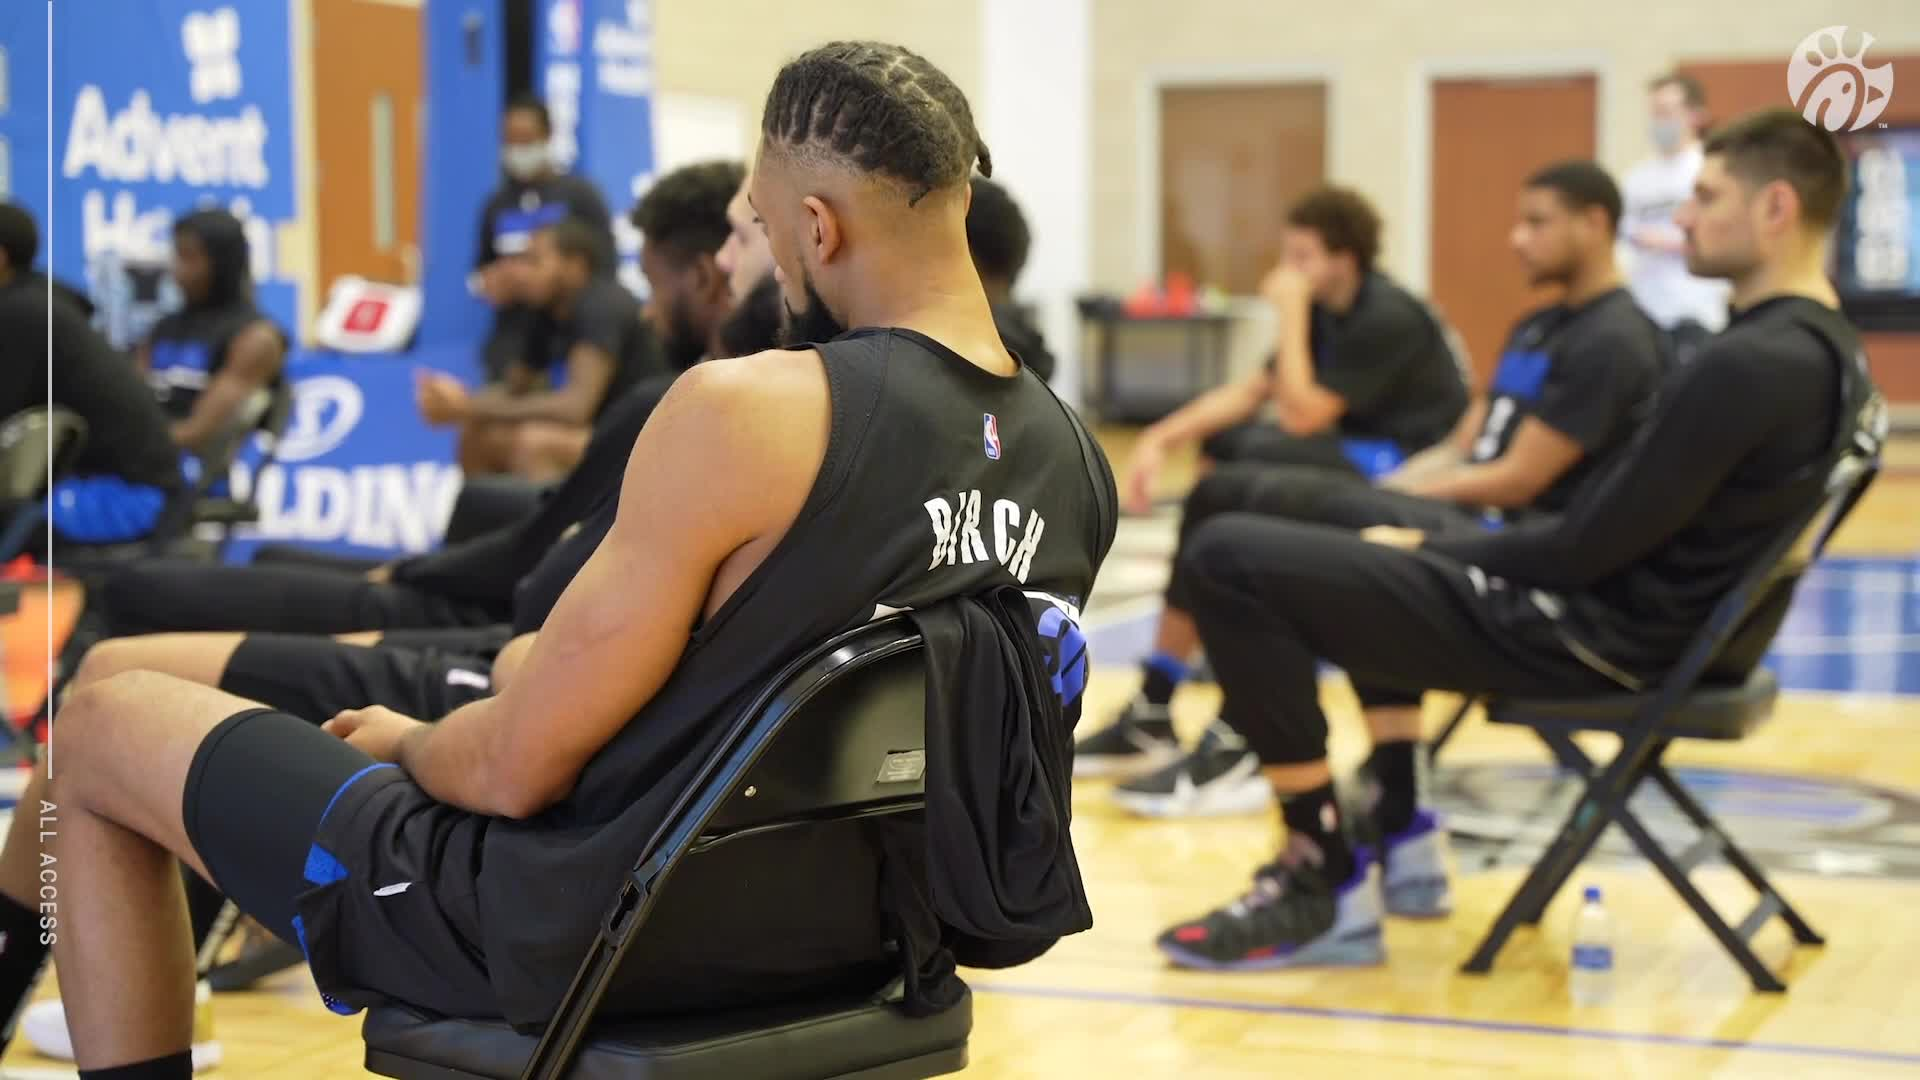 Orlando Magic All Access: Episode 7 | Presented by Chick-fil-A